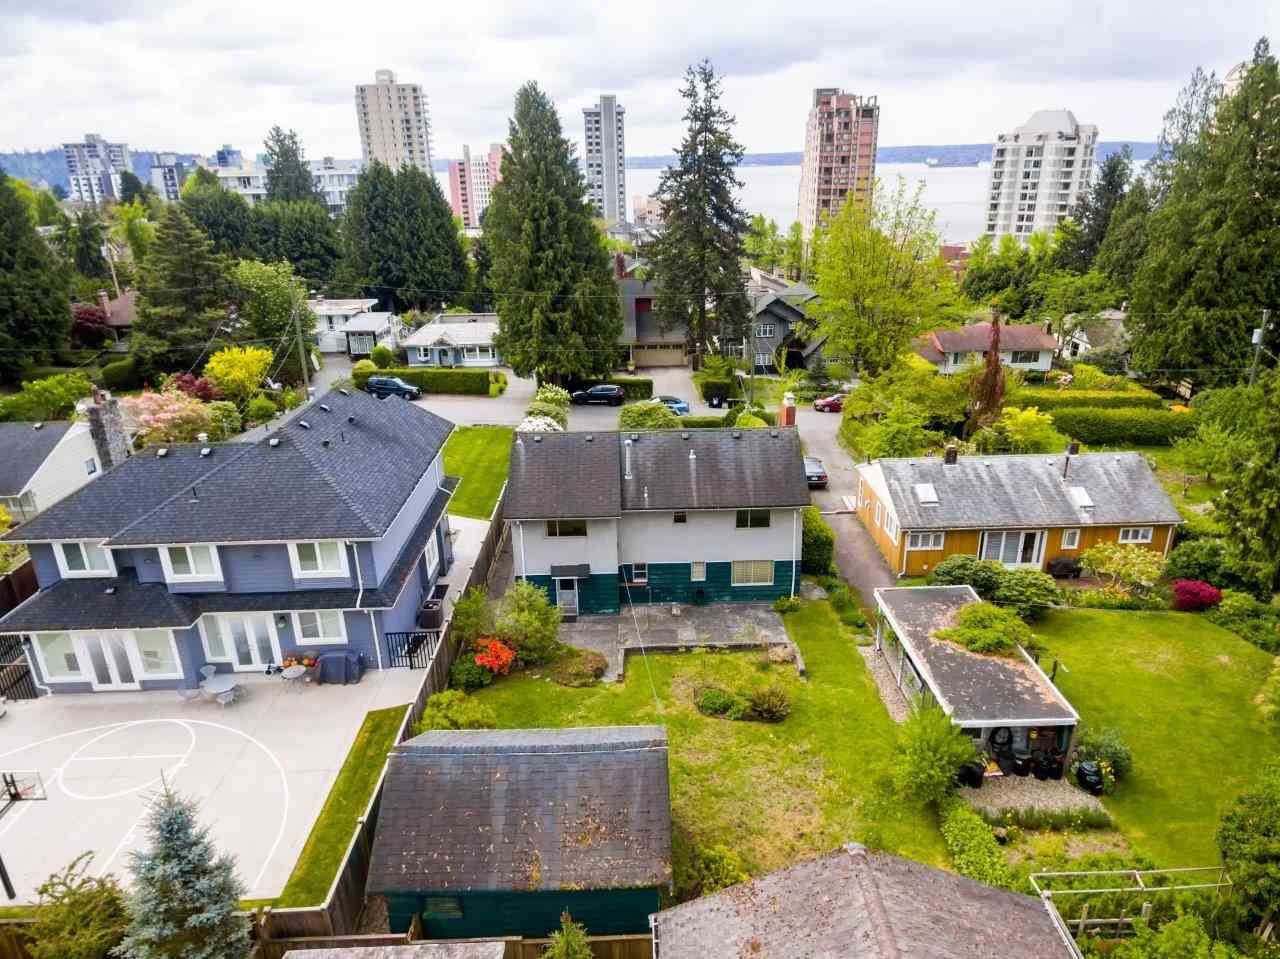 """Main Photo: 2245 GORDON Avenue in West Vancouver: Dundarave House for sale in """"Dundarave"""" : MLS®# R2265840"""